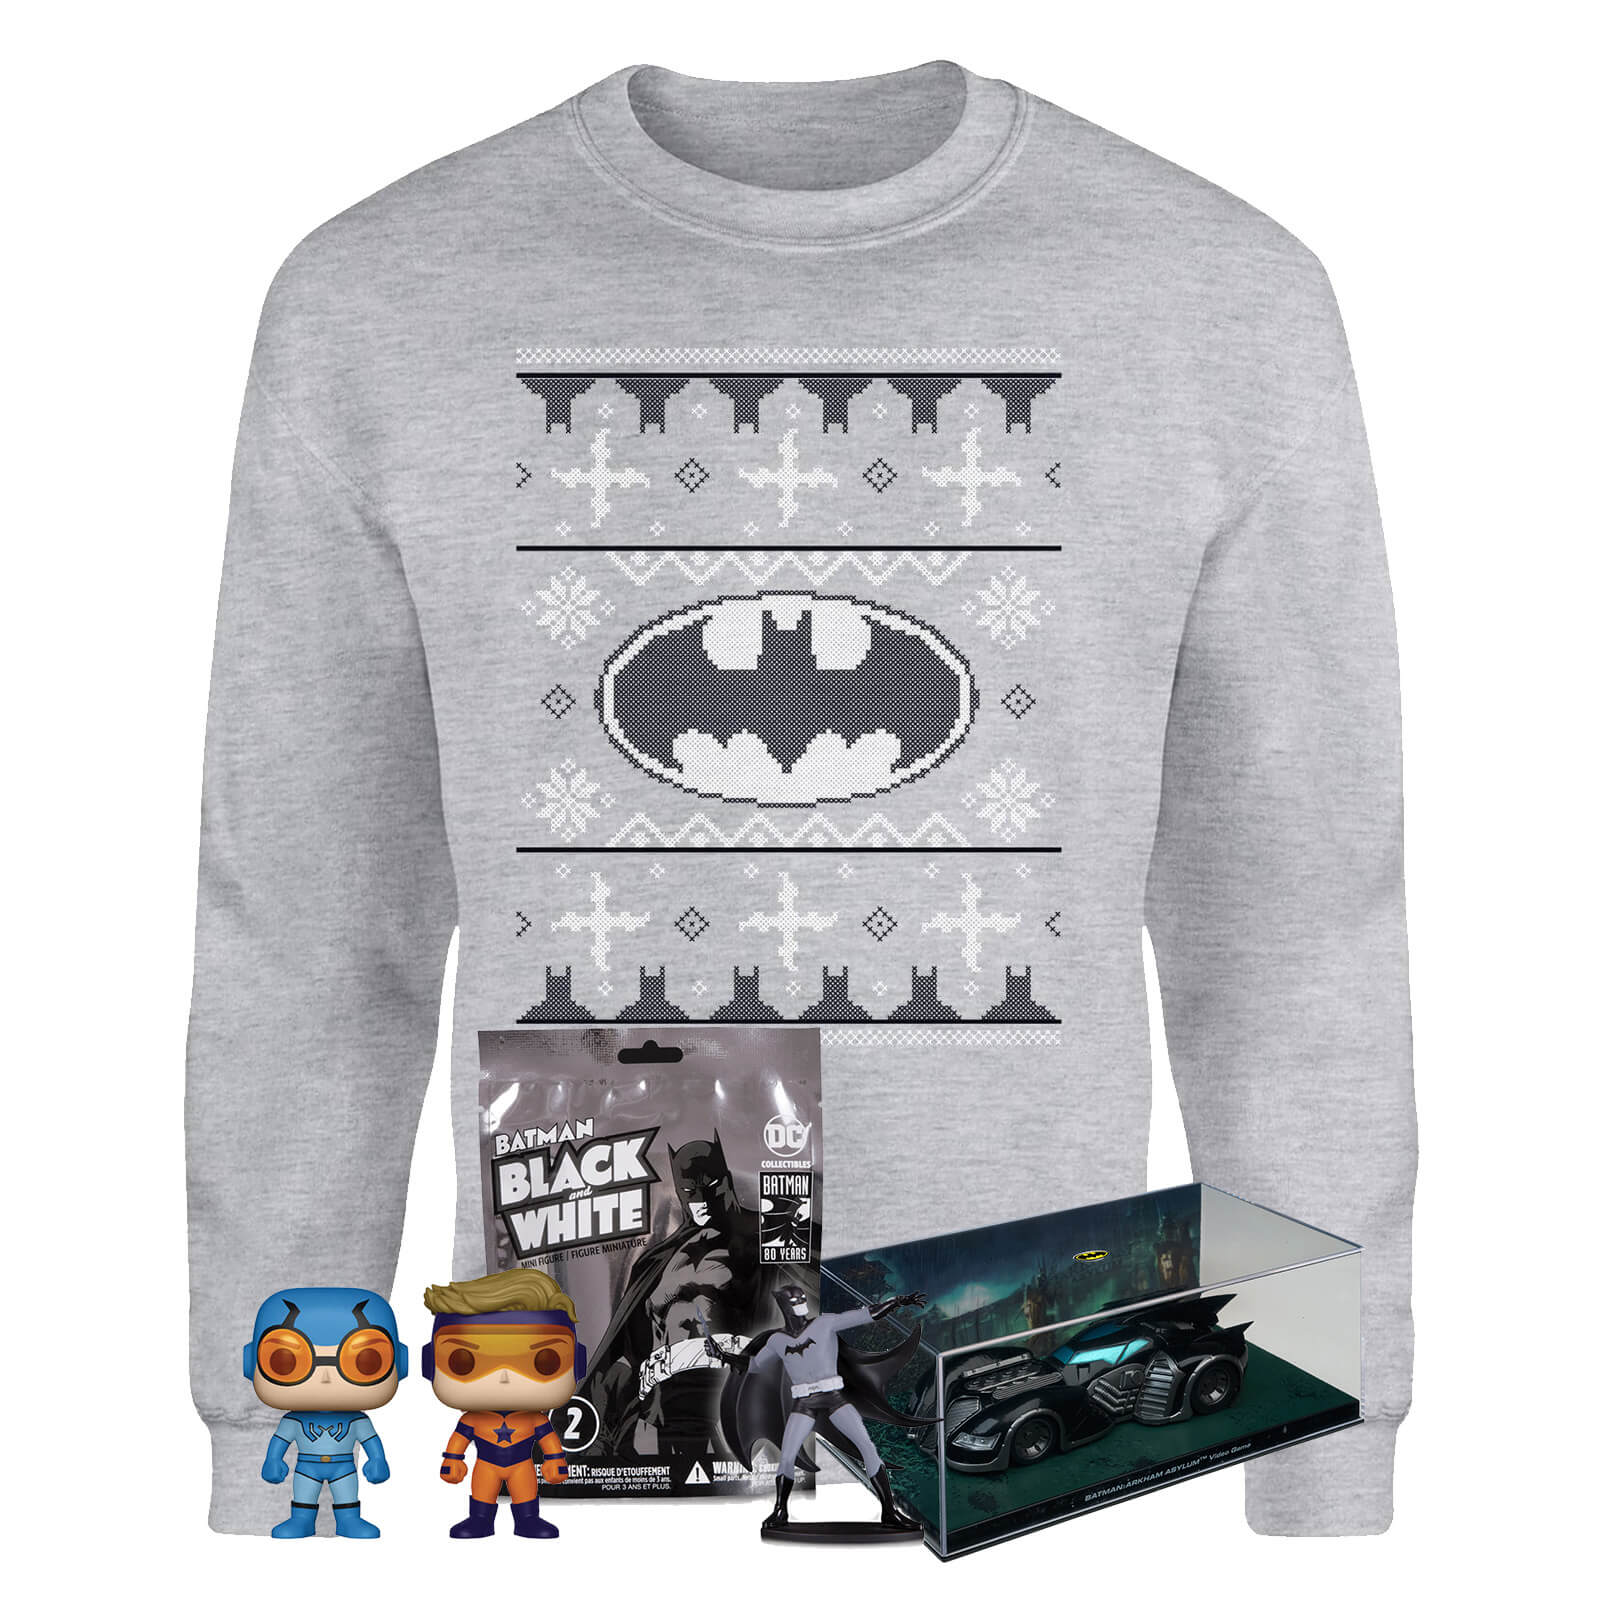 Image of DC Comics Officially Licensed MEGA Christmas Gift Set - Includes Christmas Sweatshirt plus 3 gifts - L